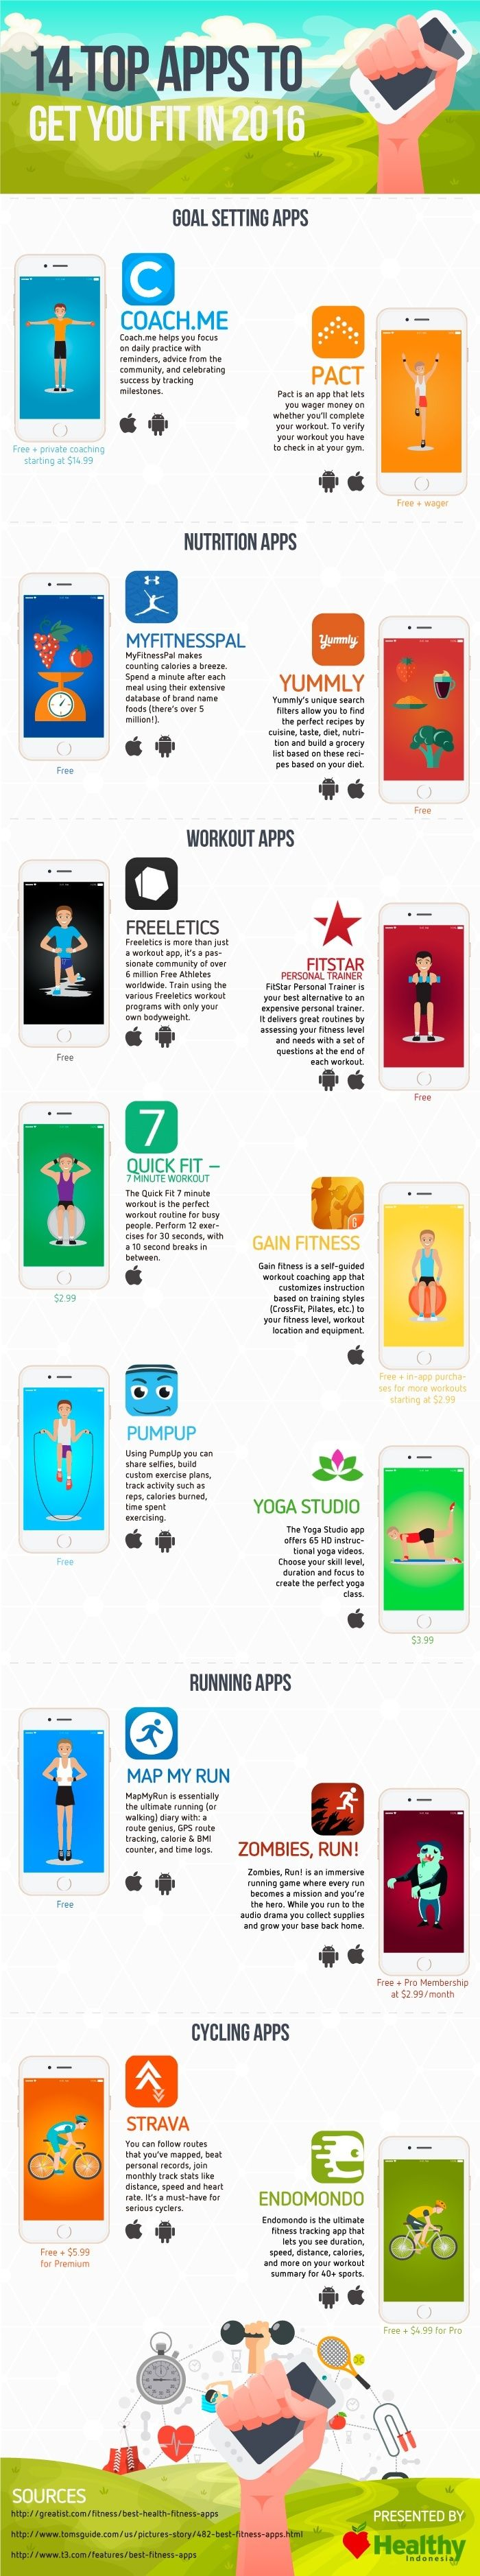 Tips to Get in Shape with Android and Apple Fitness Apps - Tipsographic